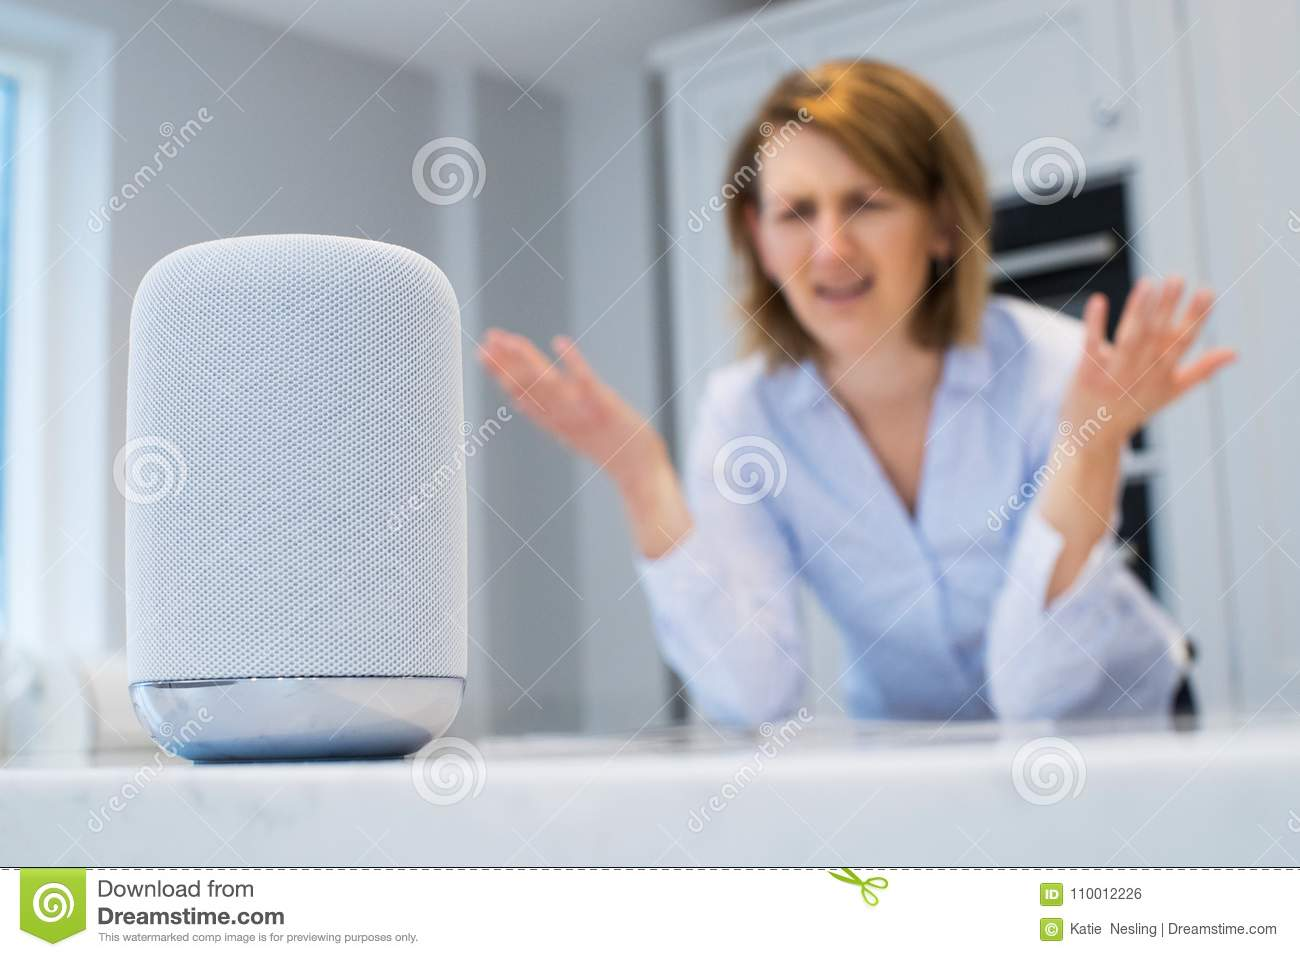 Frustrated Woman In Kitchen Asking Digital Assistant Question Stock ...